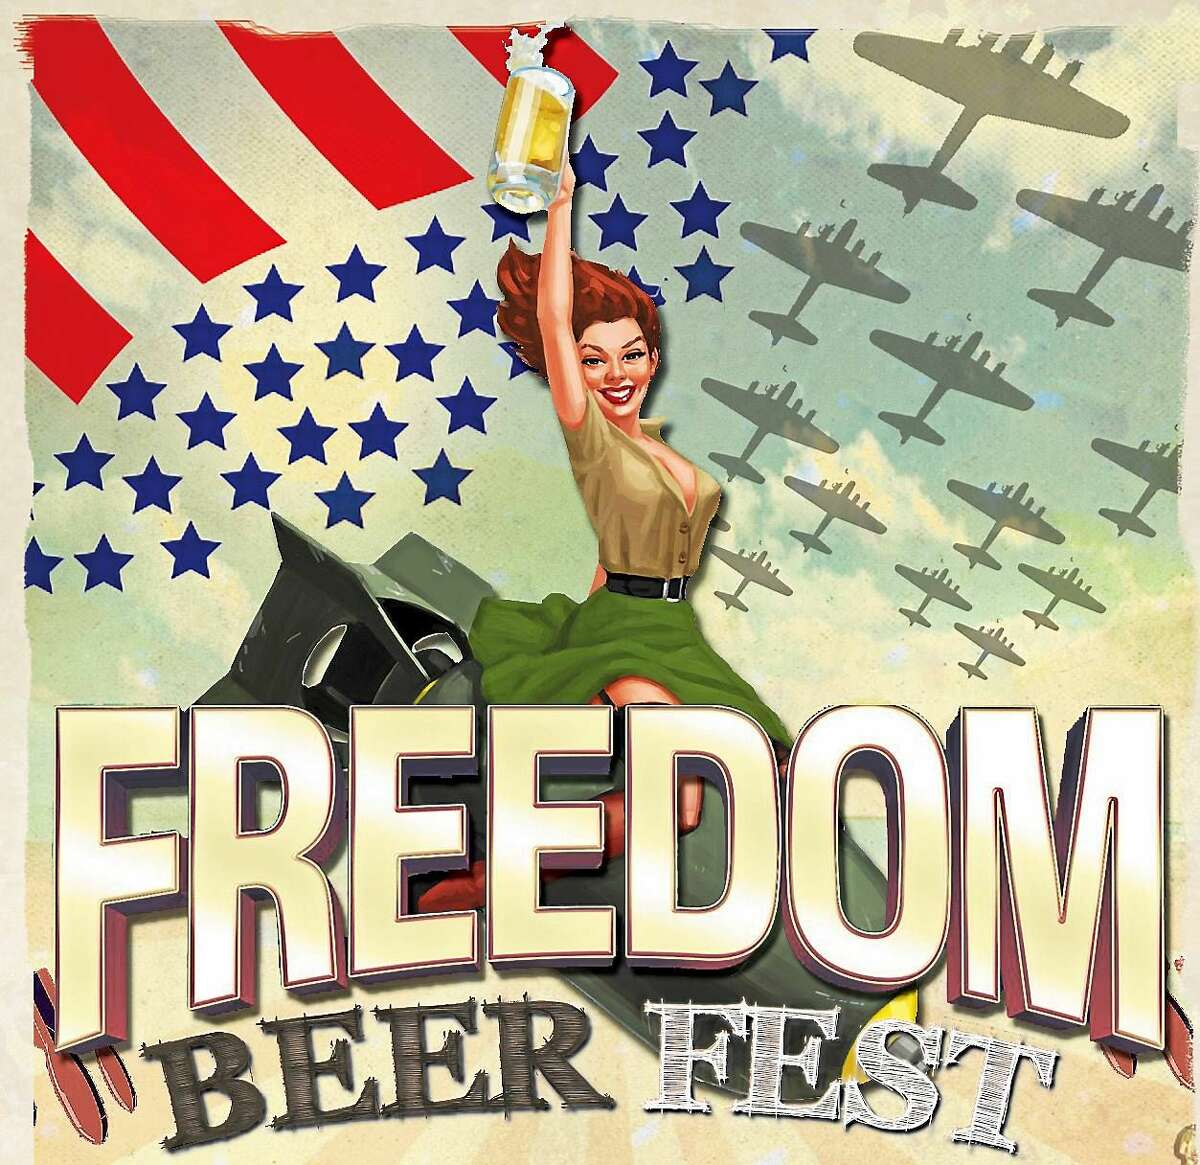 HOIST FOR A CAUSE: Volunteer group Valiant in the Valley Inc. will throw a new event Saturday to benefit the Wounded Warrior Project. The first Freedom Fest Craft Beer Festival will take place at Warsaw Park in Ansonia from 1 to 4:30 p.m. There will be 70 different brews, six food trucks and 25 specialty vendors, along with live music on the main stage by American Babies, the Balkun Brothers and Remember September. As a tribute to our military, vets and those currently enlisted will be allowed to enter the festival at noon to enjoy the festivities. (Open to all ages, but 21-plus for beer.) Tickets are $10-$35. For more information, go to www.freedombeerfest.com.